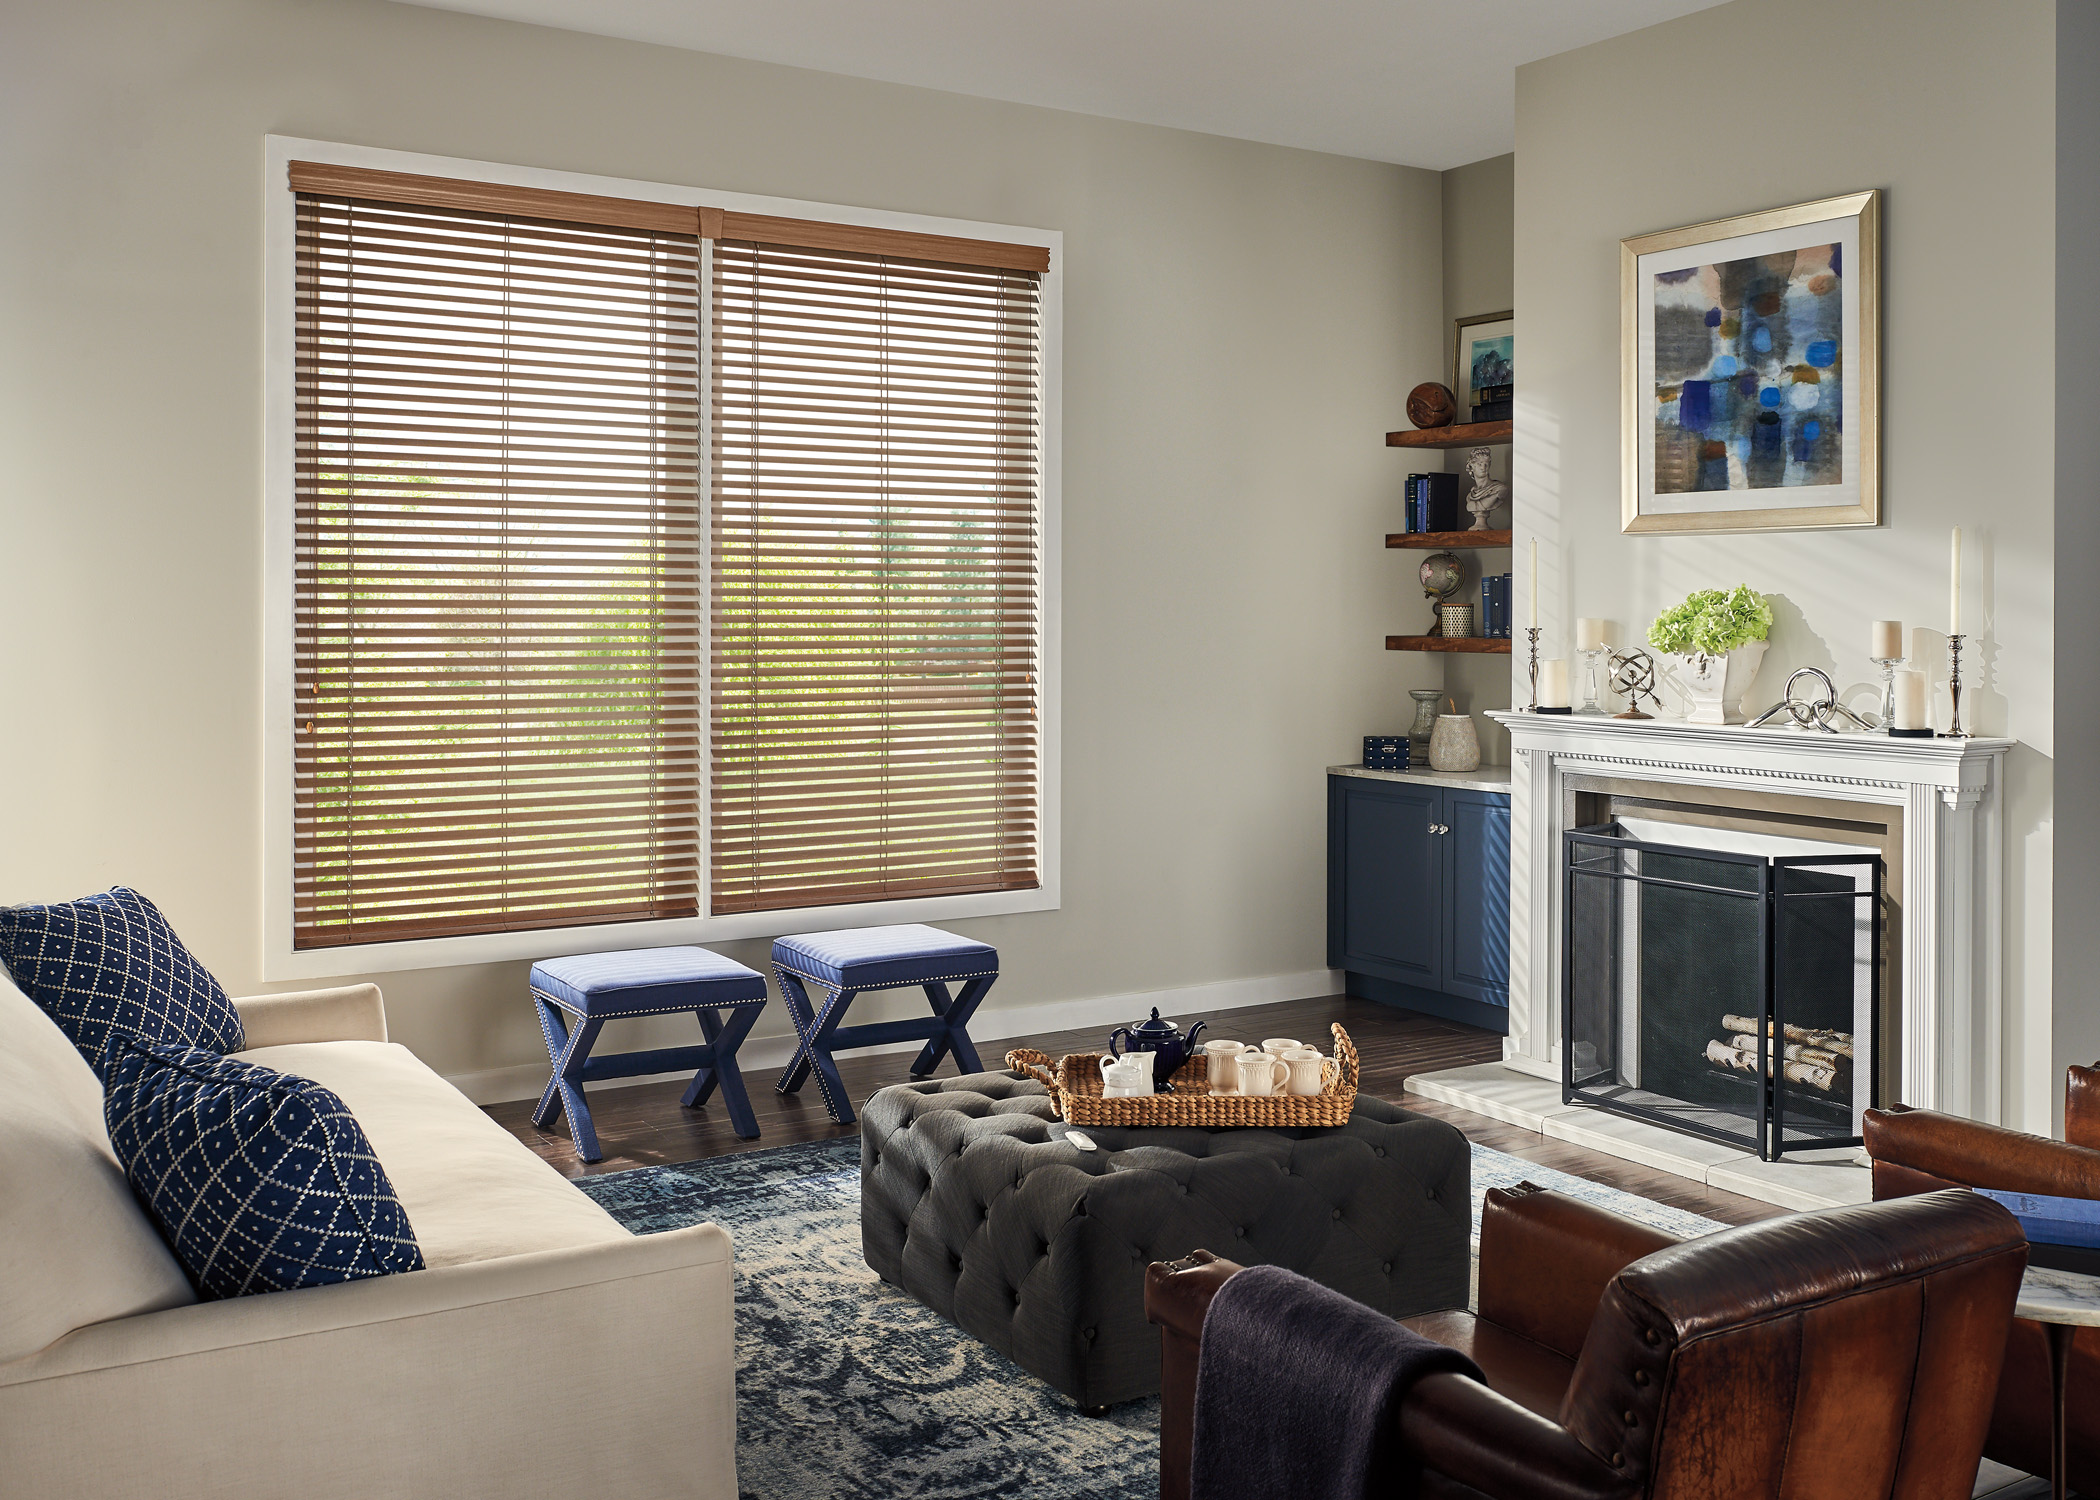 Graber_Wood Blinds_LivingRoom1.jpg